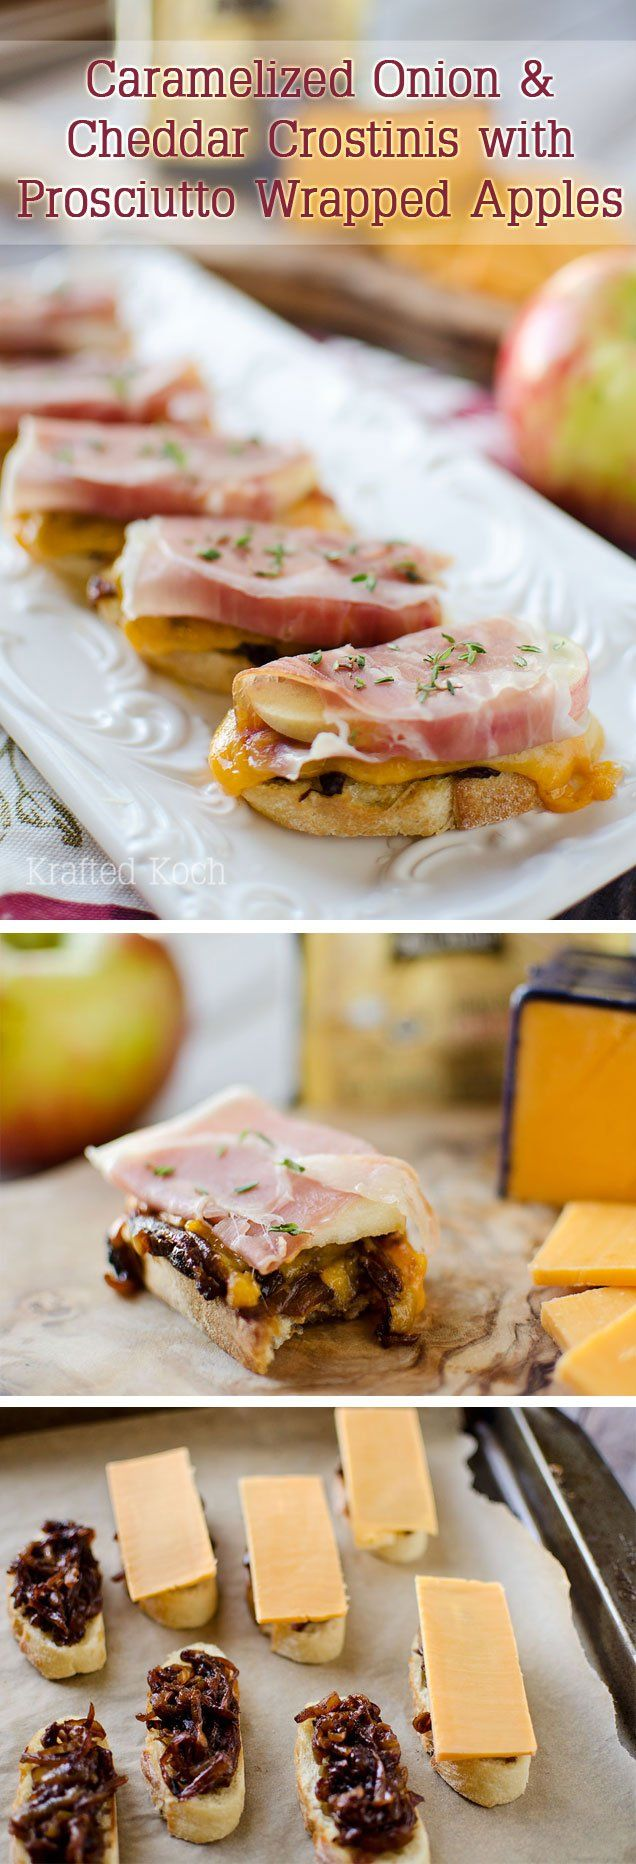 Prosciutto, Cheddar and Onions on Pinterest